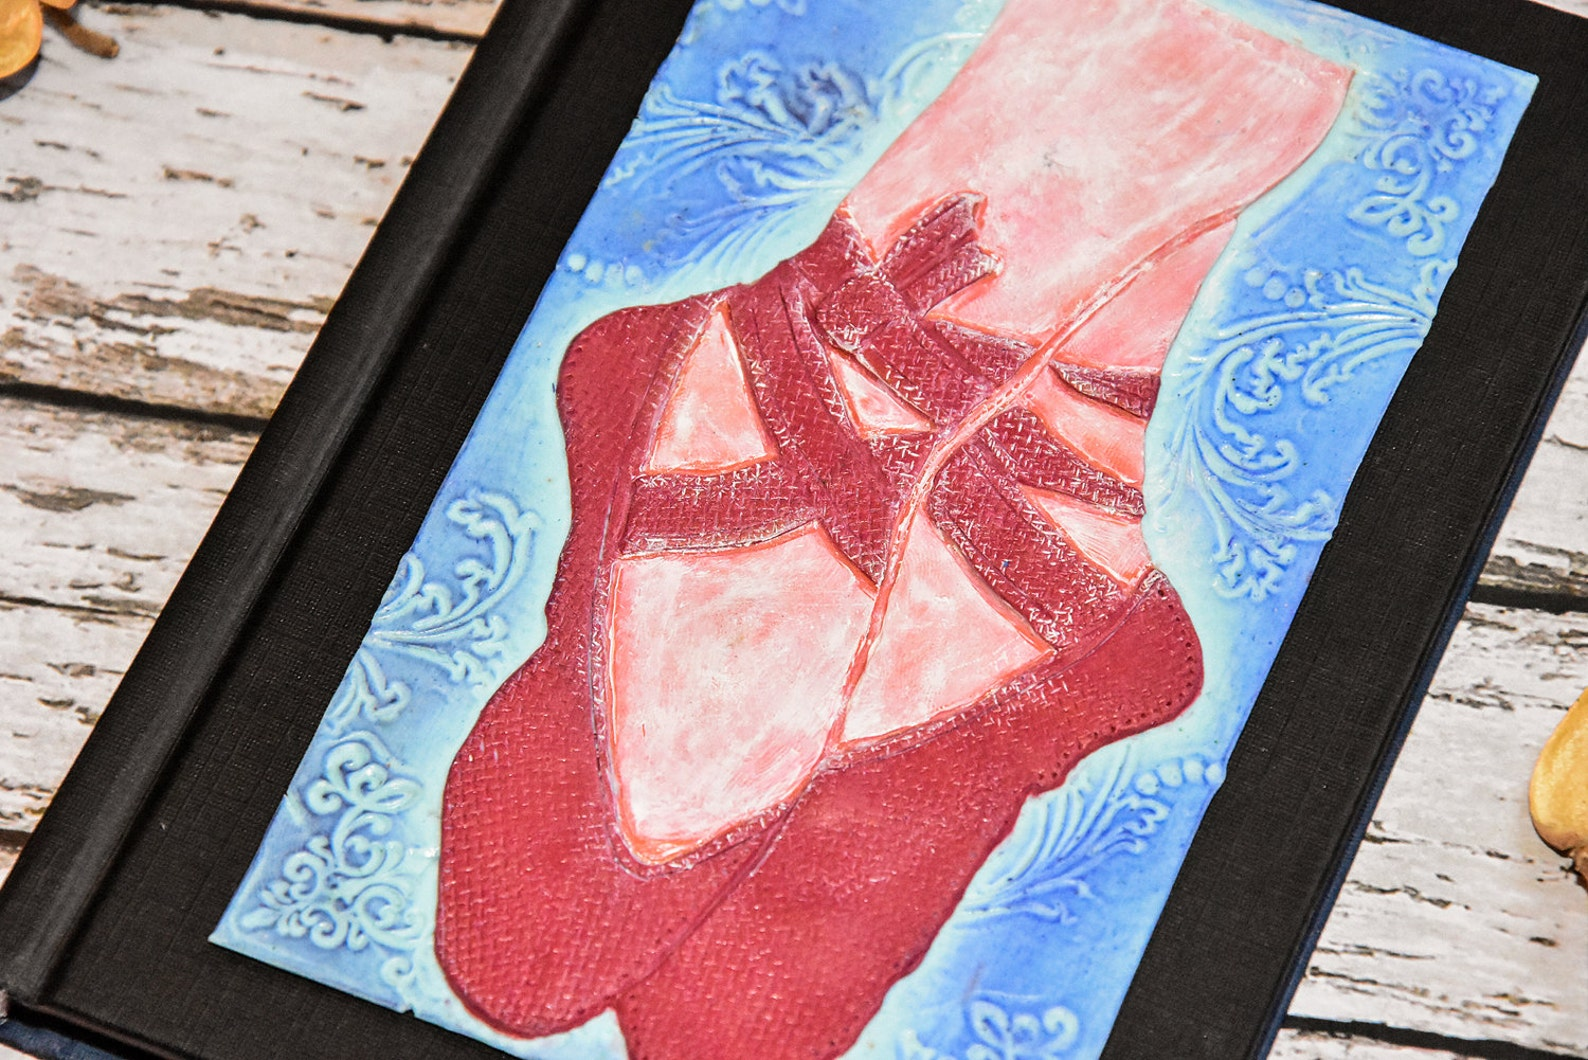 ballet shoes journal a6 handmade polymer clay cover. beauty, ballerina painting effect, flora texture. polymer clay notebook/ di